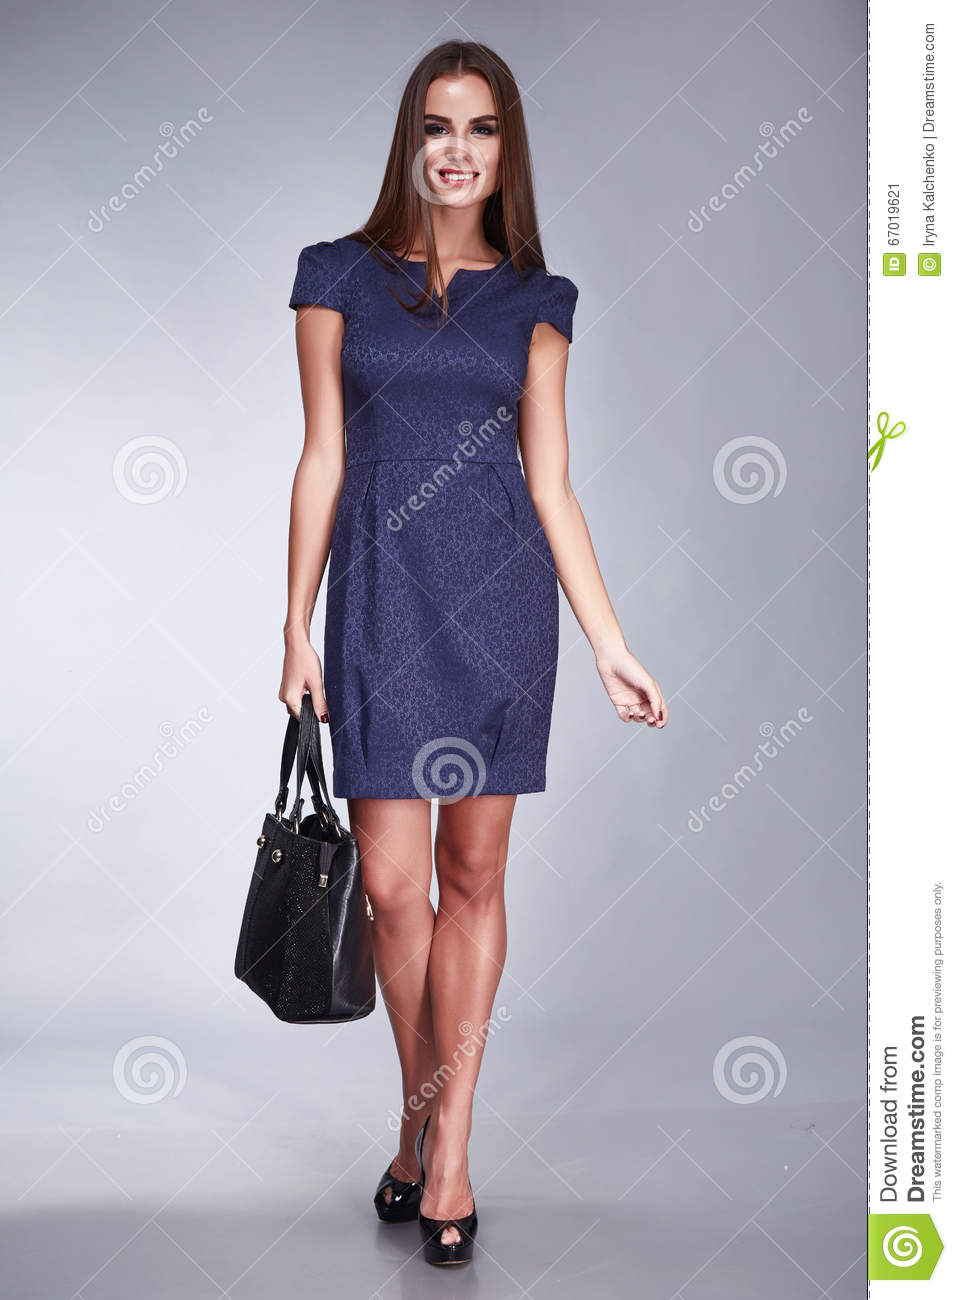 Short jeans dress to